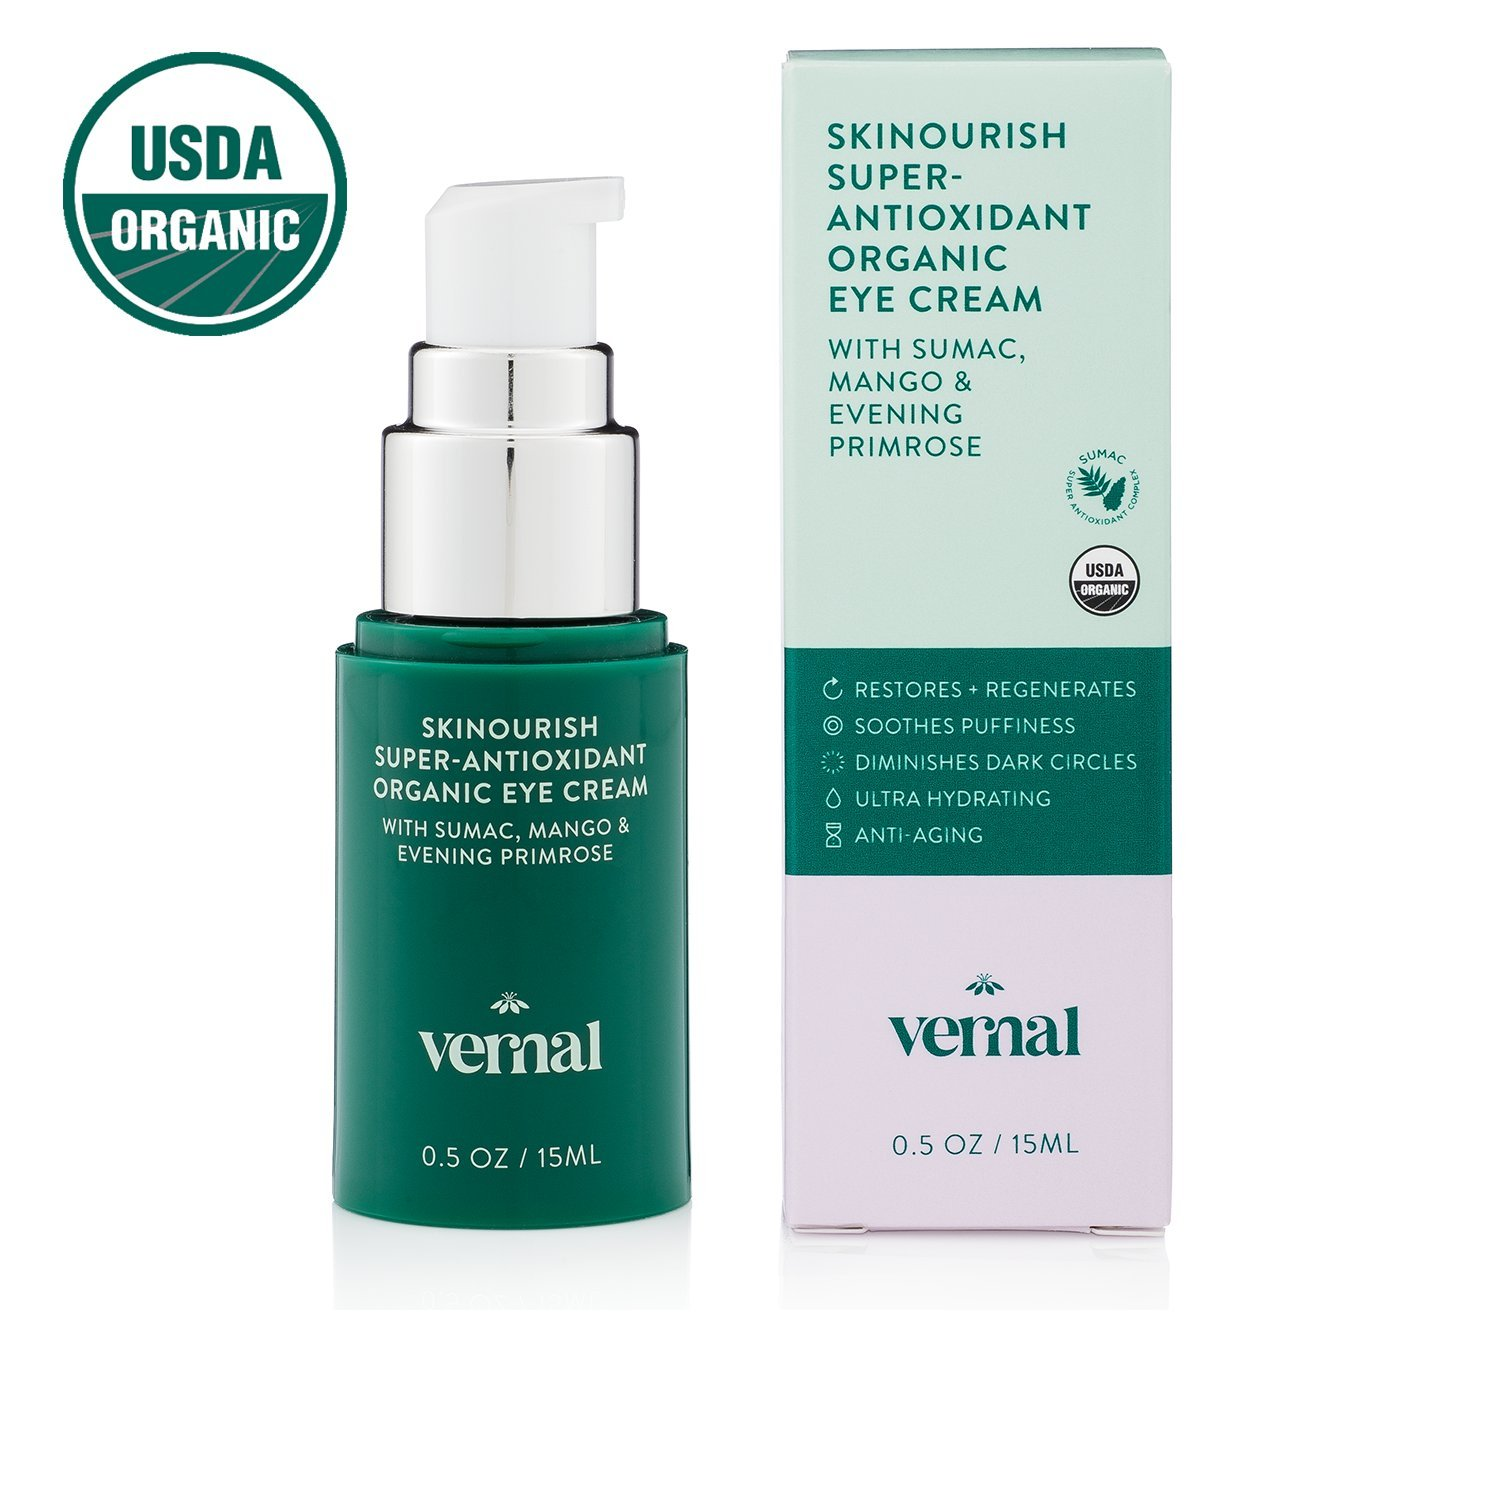 5. Vernal SKINourish Super Antioxidant Organic Eye Cream